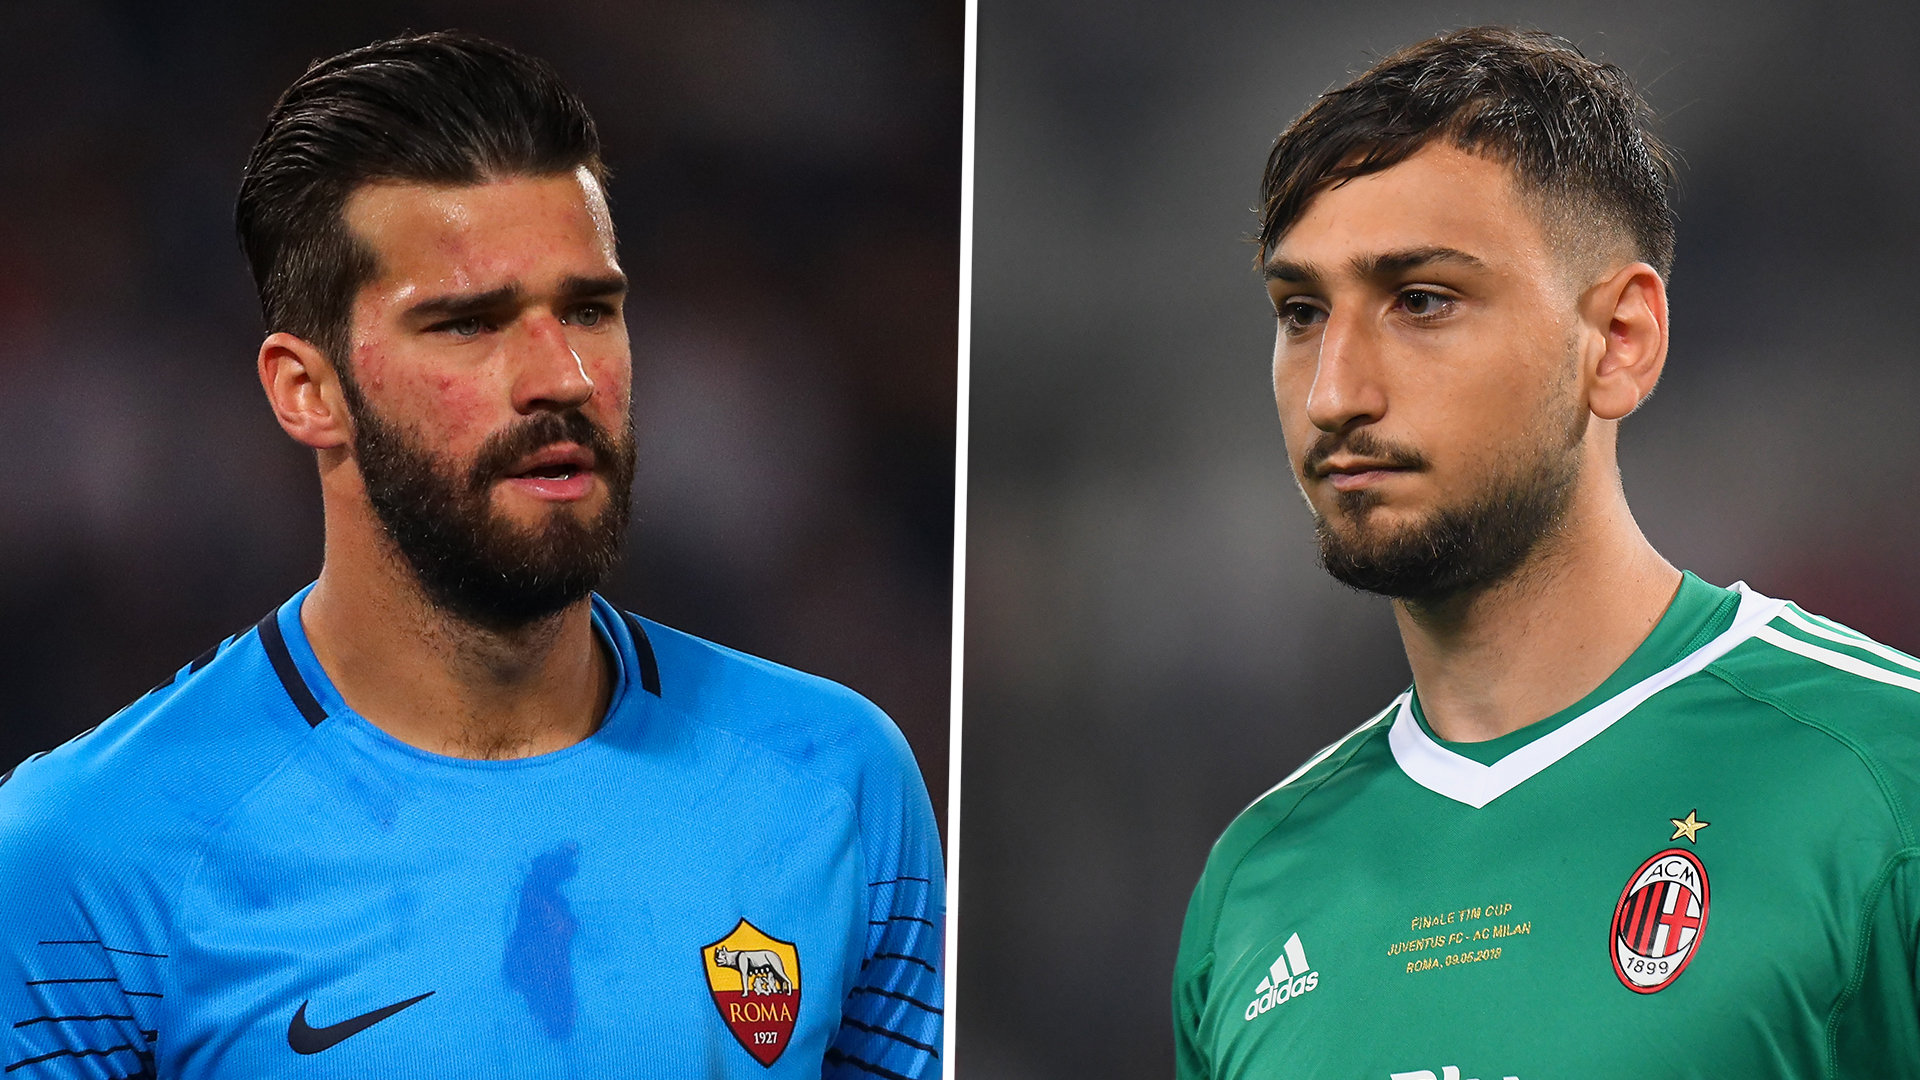 Roma convinced Liverpool closer to Alisson deal than Chelsea